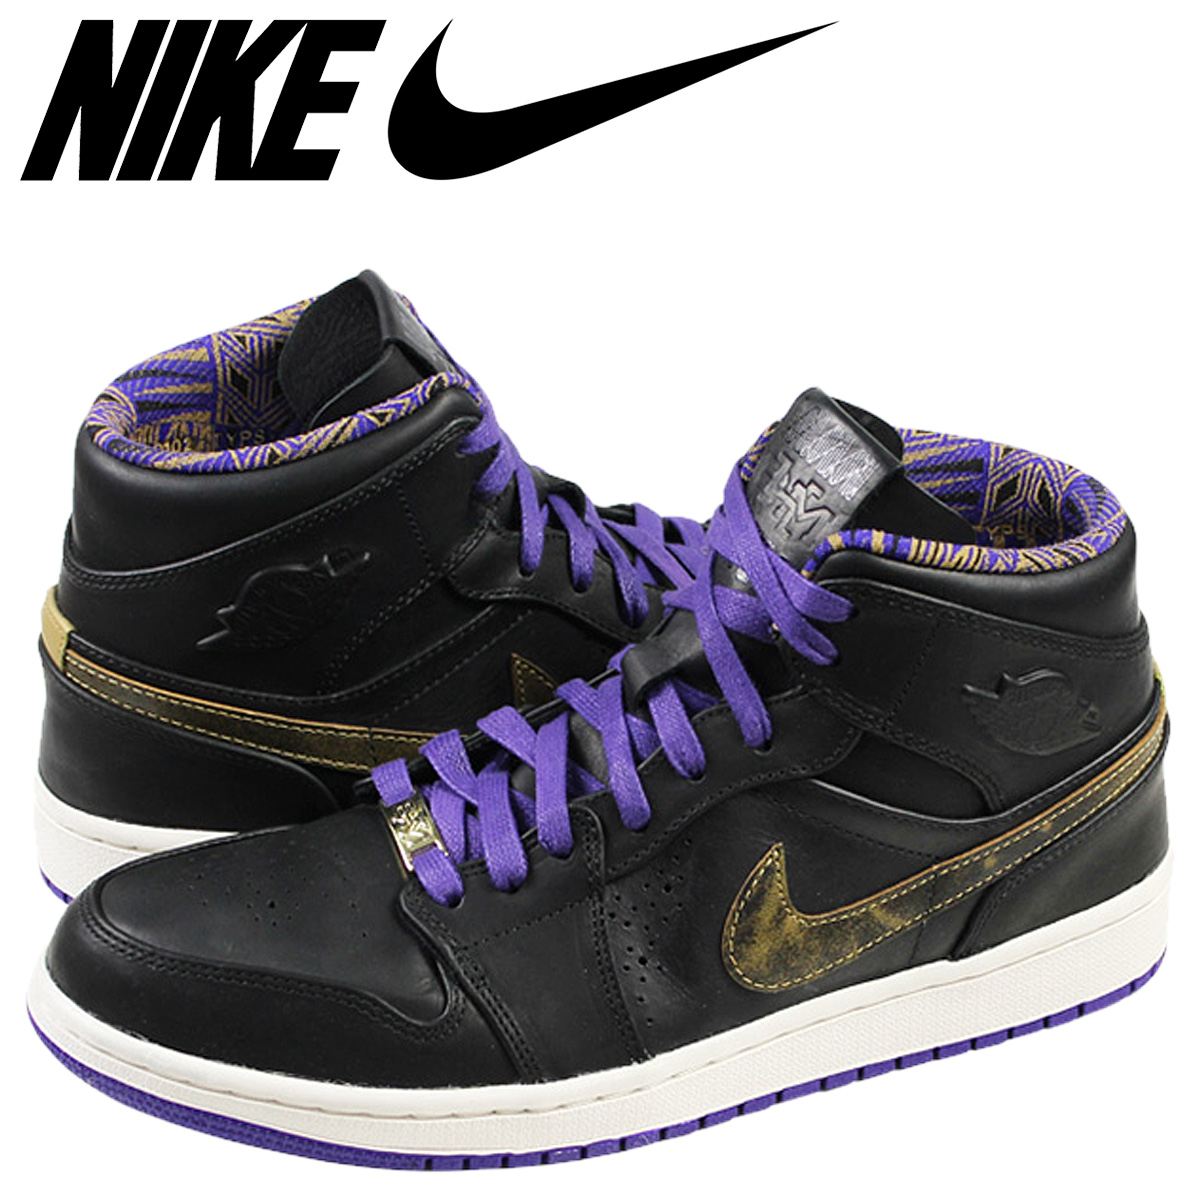 best website 0bf47 760b4 -NBA debut with Michael Jordan in 1985, his signature model No. 1 AIR  JORDAN 1 • Achieved twice consecutively in the first ever bulls era.